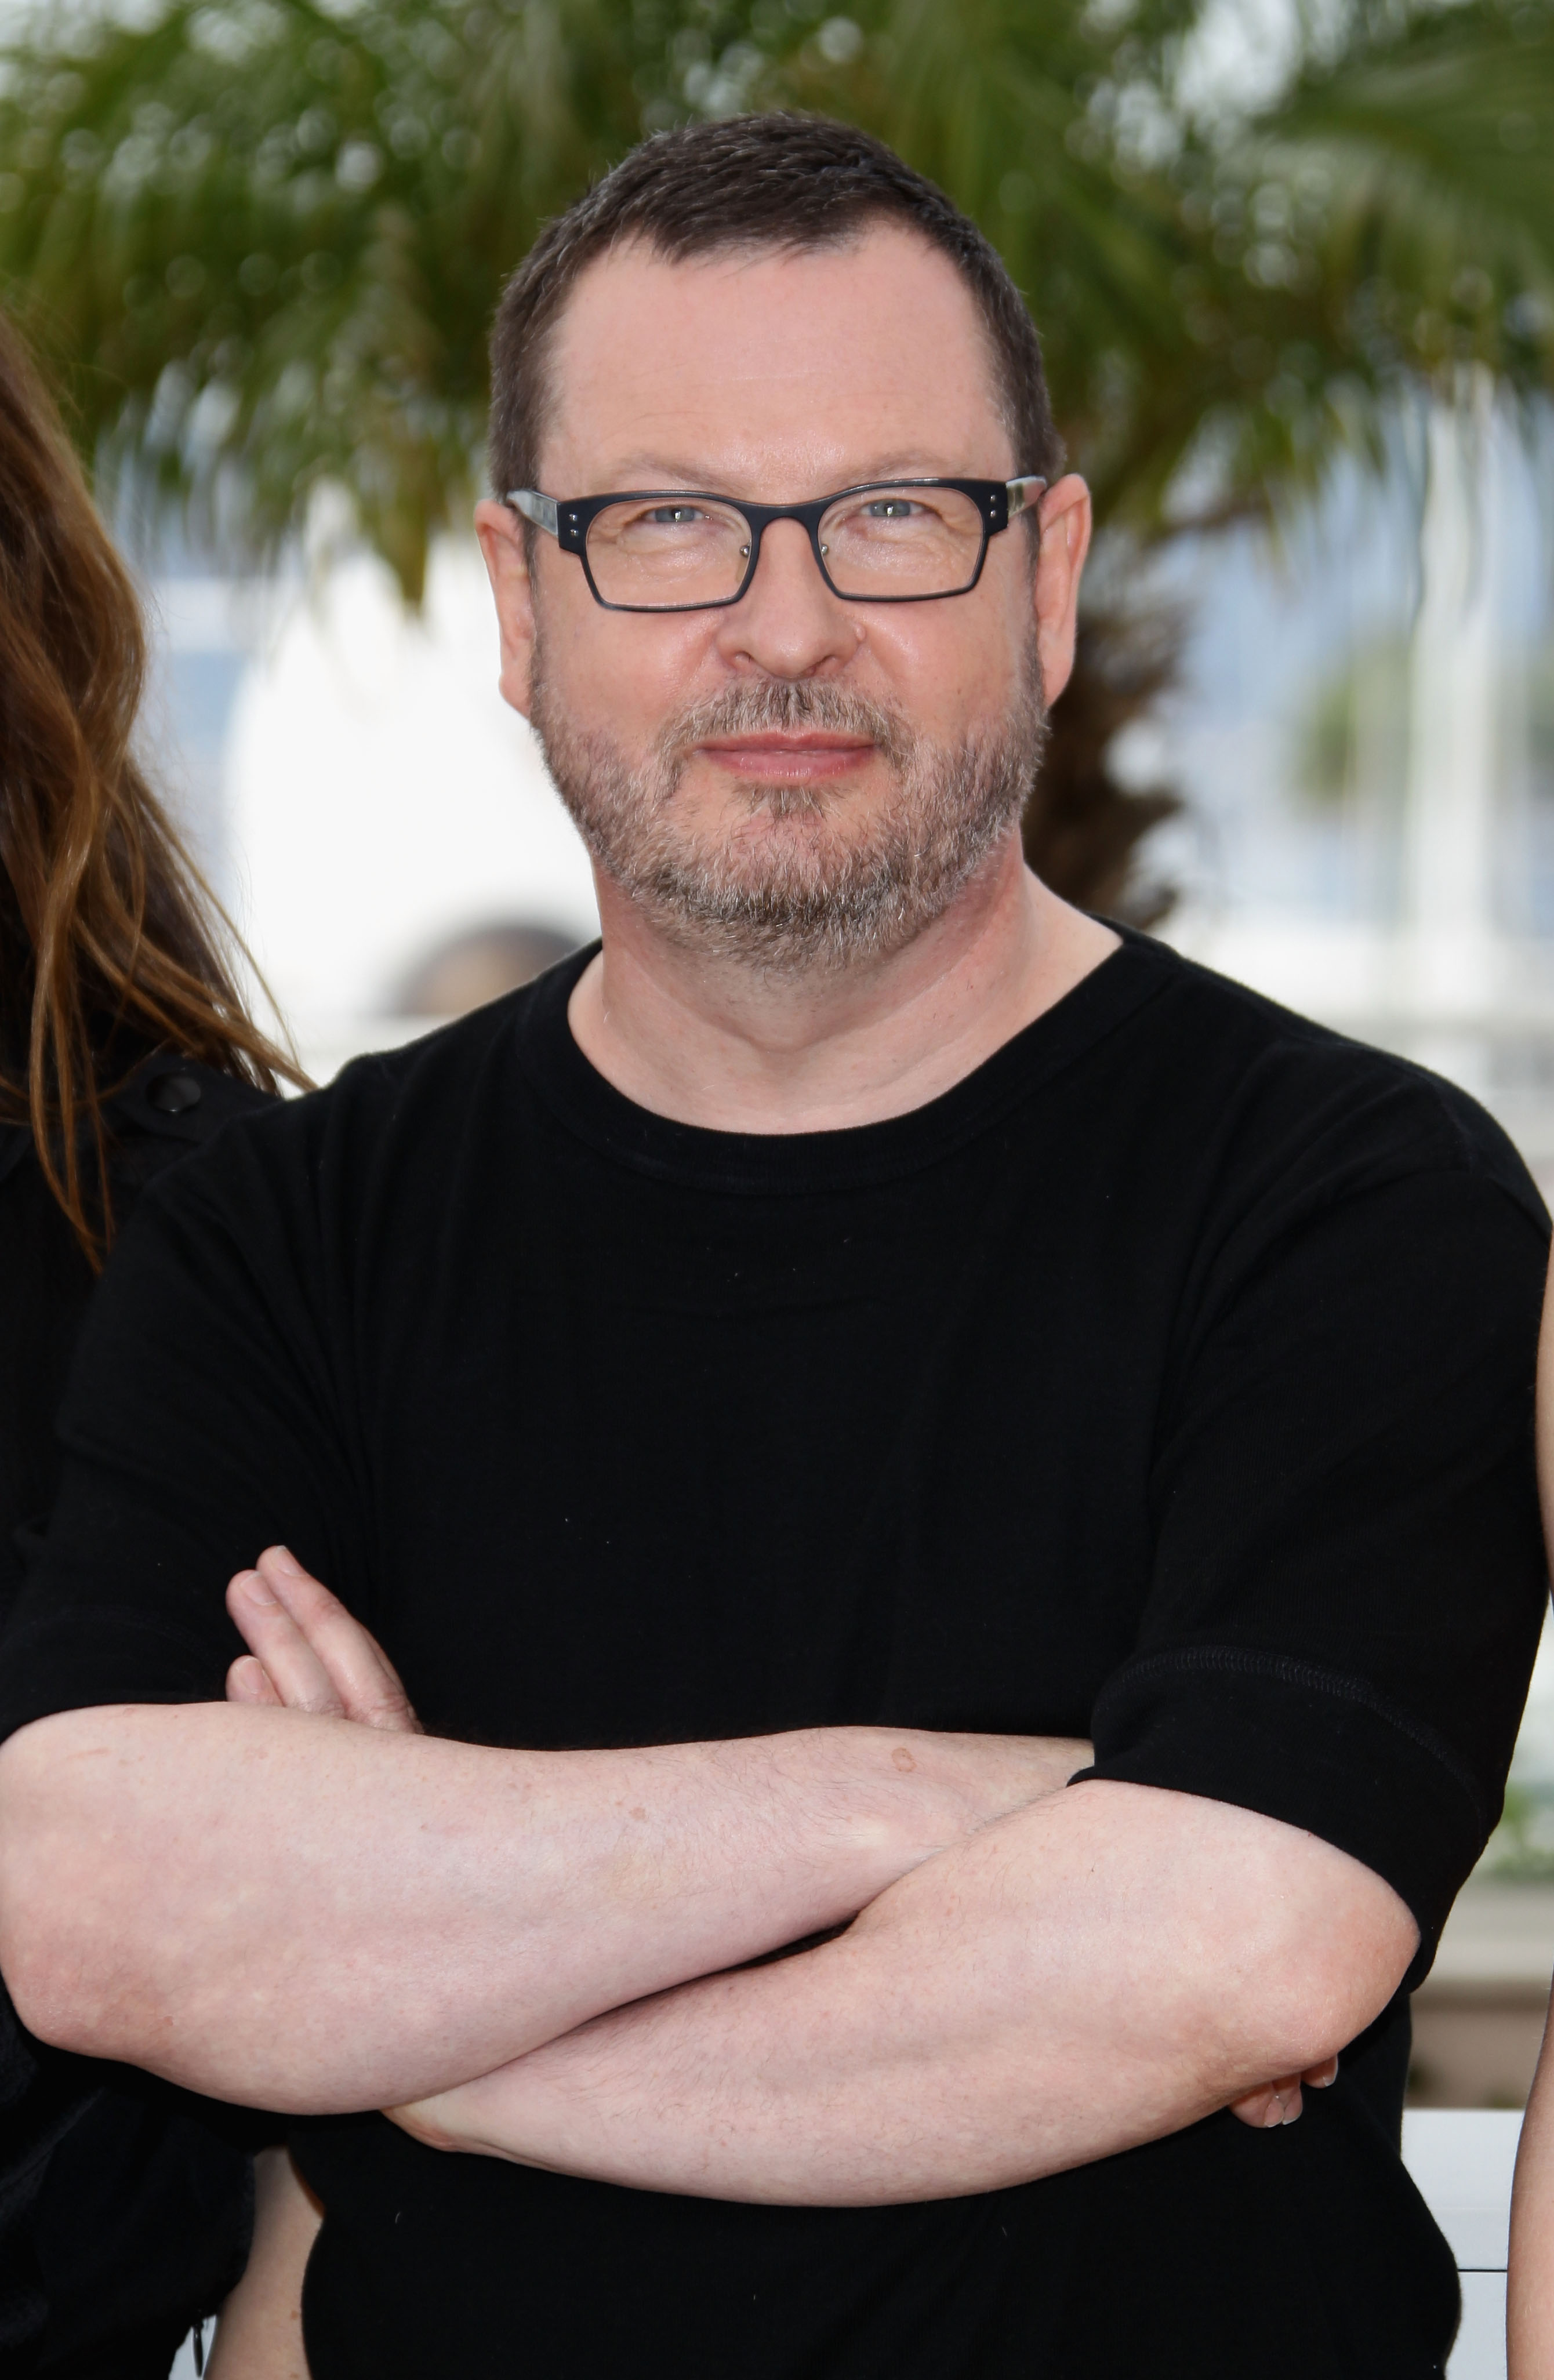 Director Lars Von Trier attends the  Melancholia  photocall at the Palais des Festivals during the 64th Cannes Film Festival on May 18, 2011 in Cannes, France.